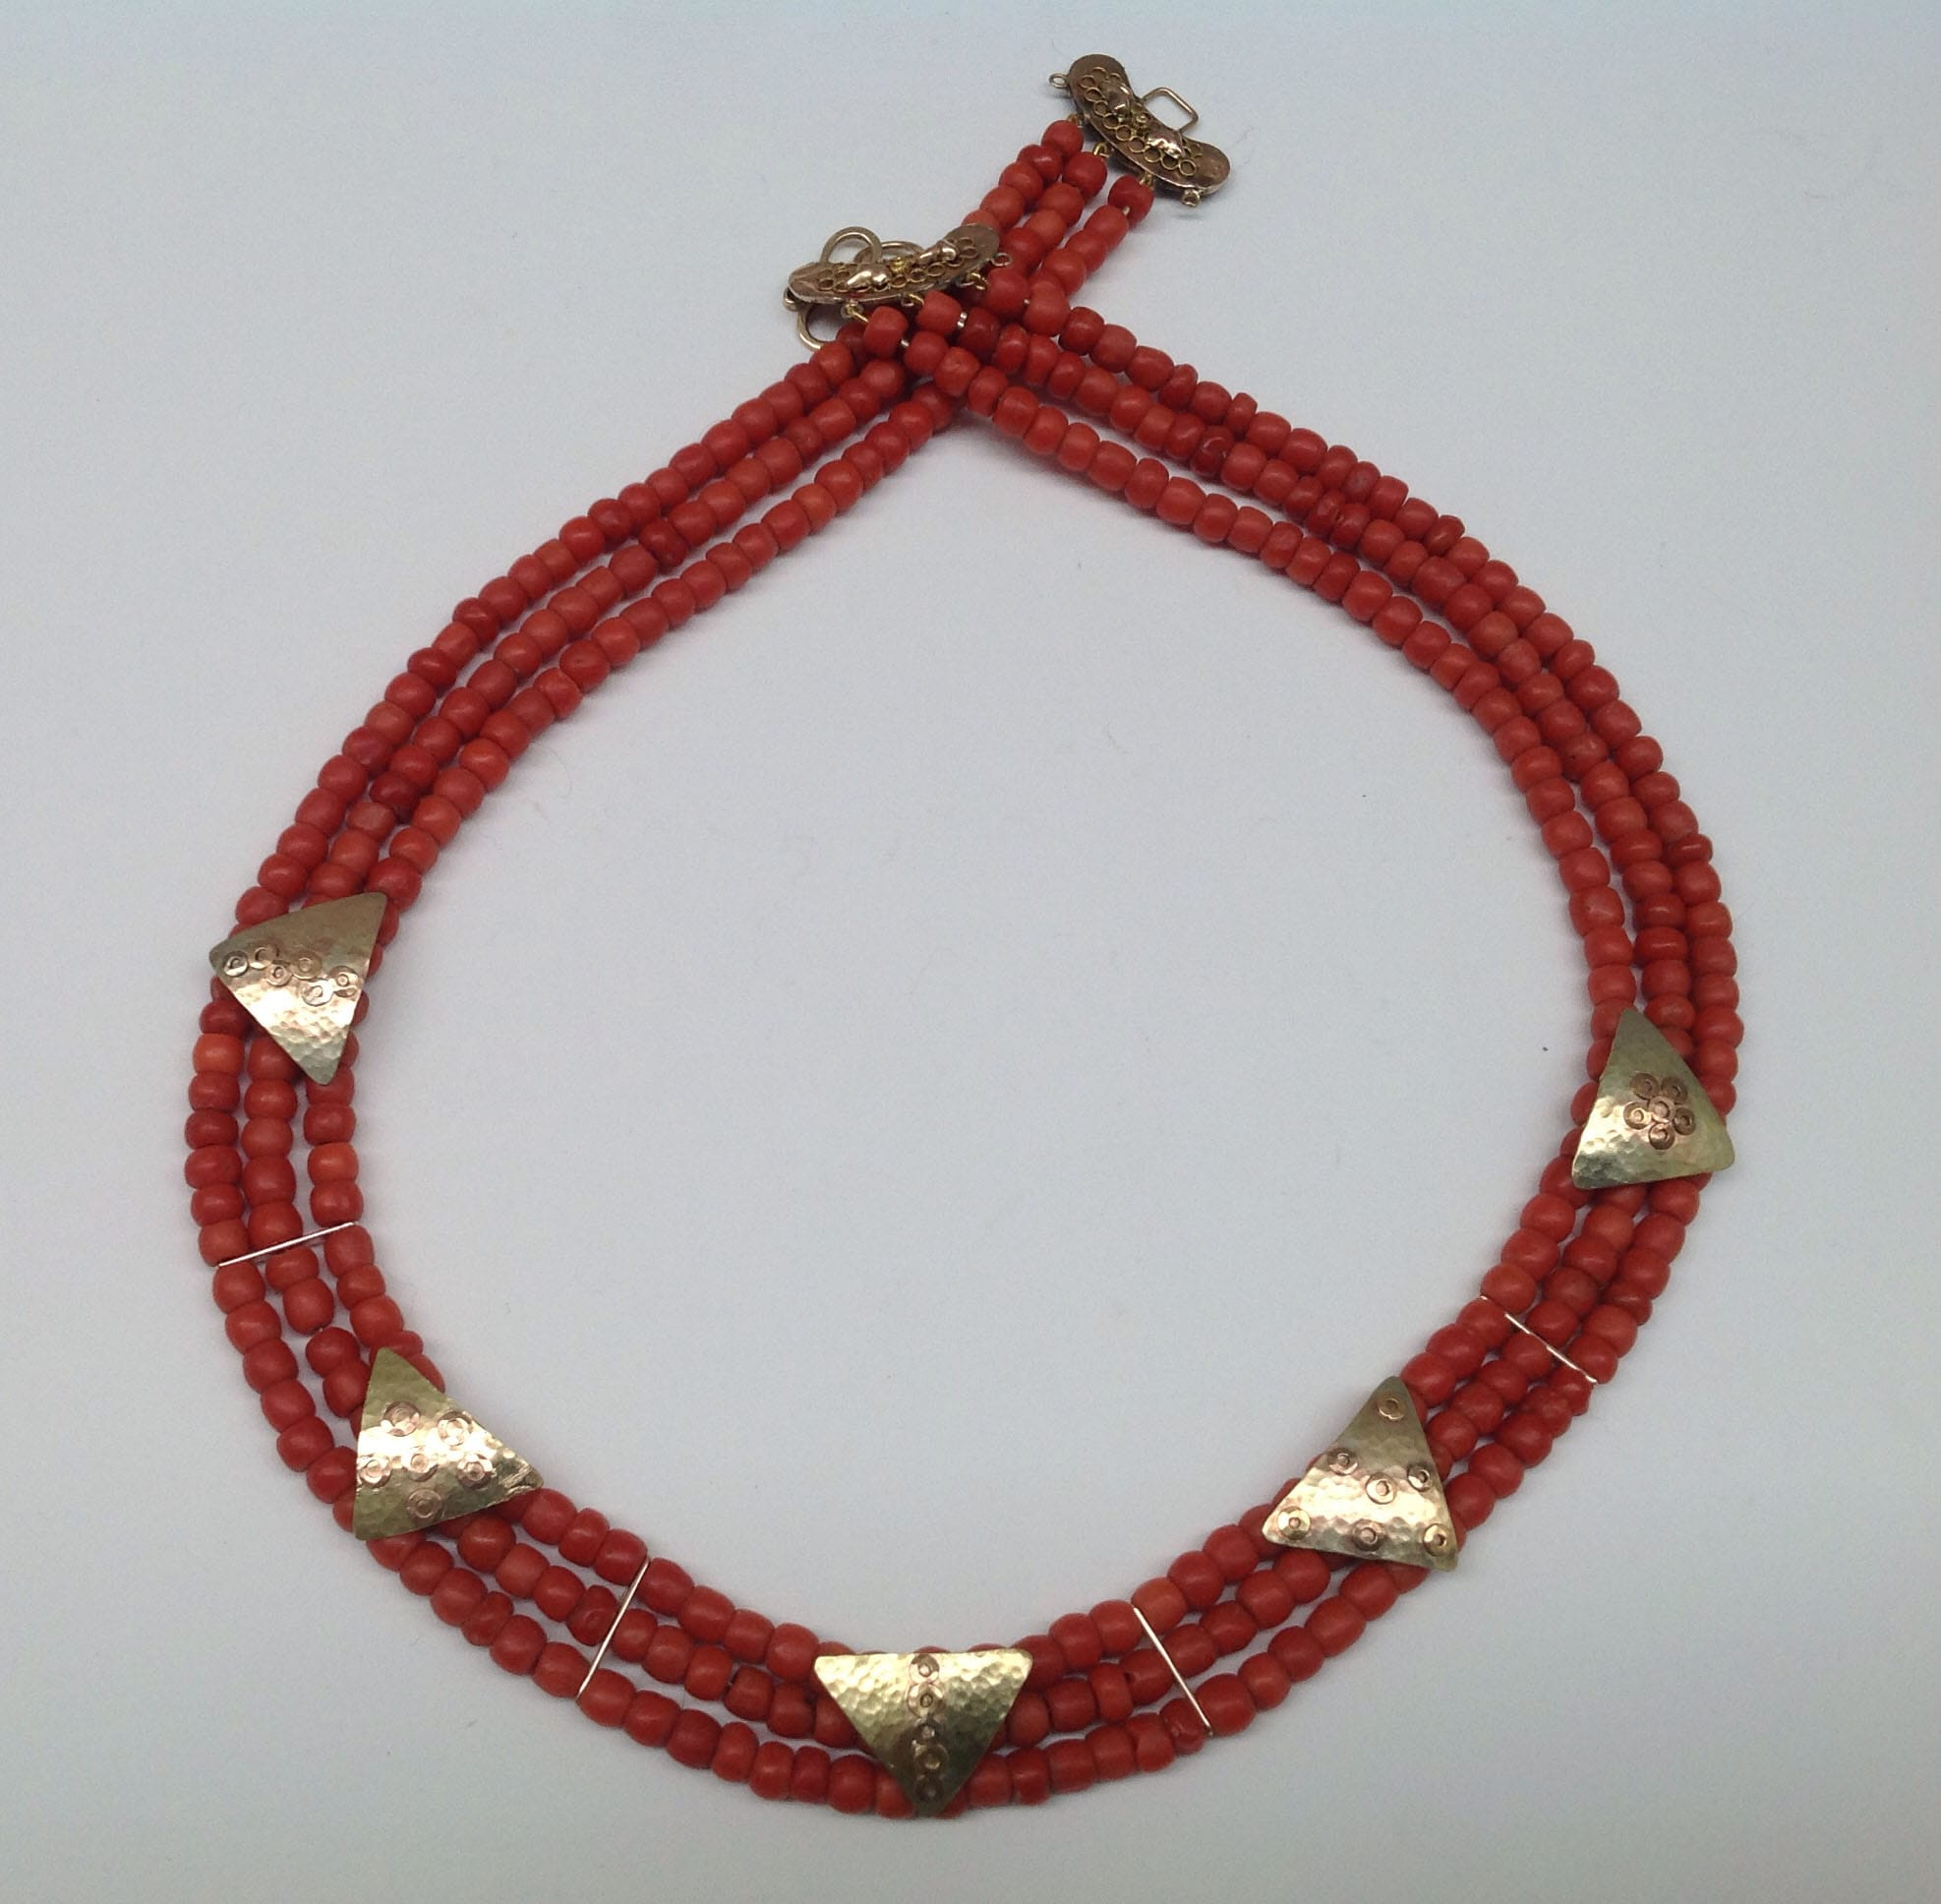 Antique coral beads, 9 carat yellow gold detail and clasp